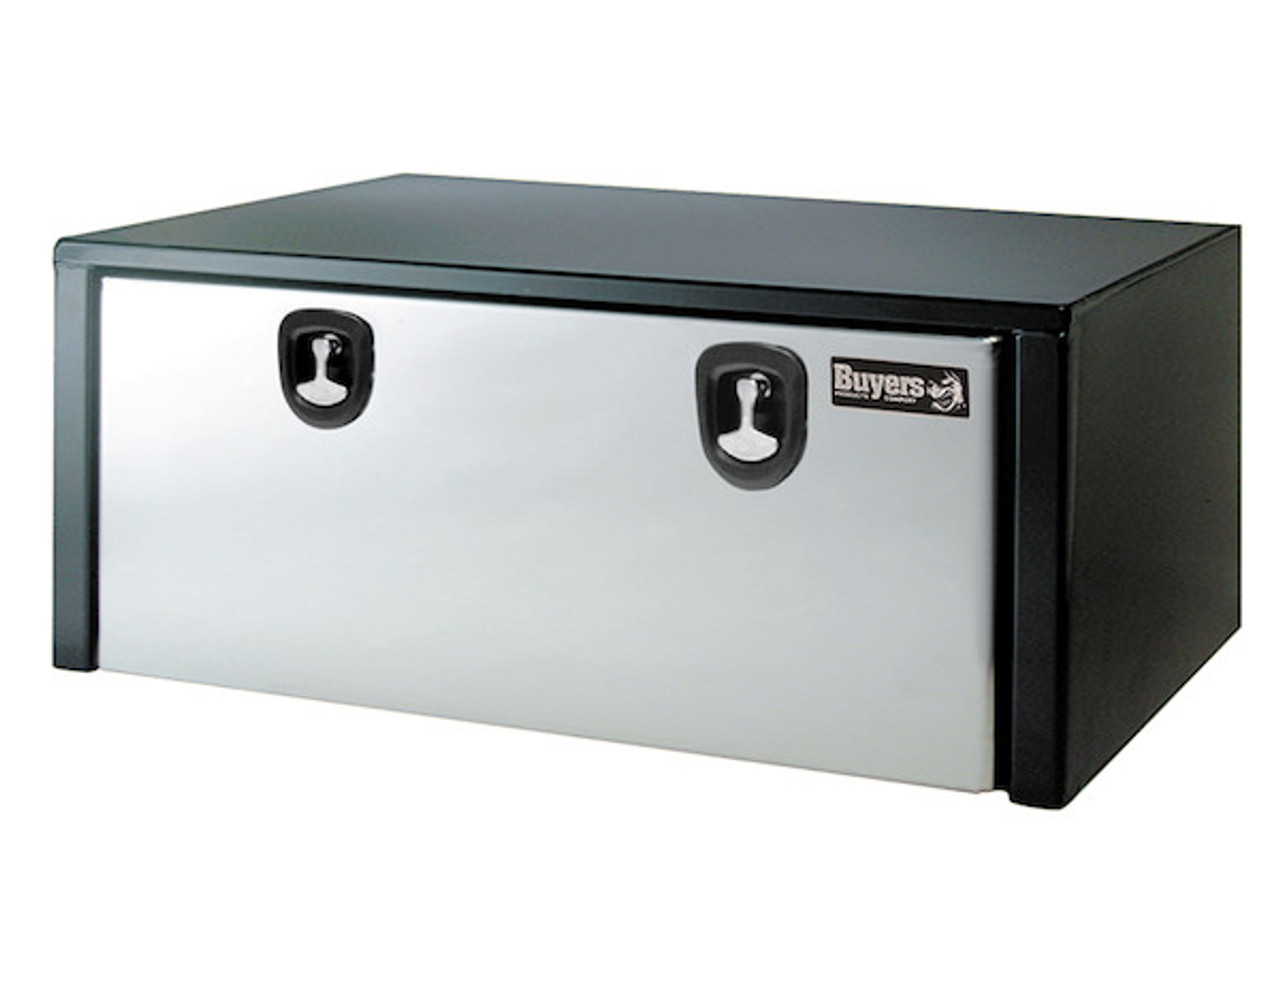 1702710 BUYERS PRODUCTS BLACK STEEL UNDERBODY TRUCK BOX WITH STAINLESS STEEL DOOR TOOLBOX